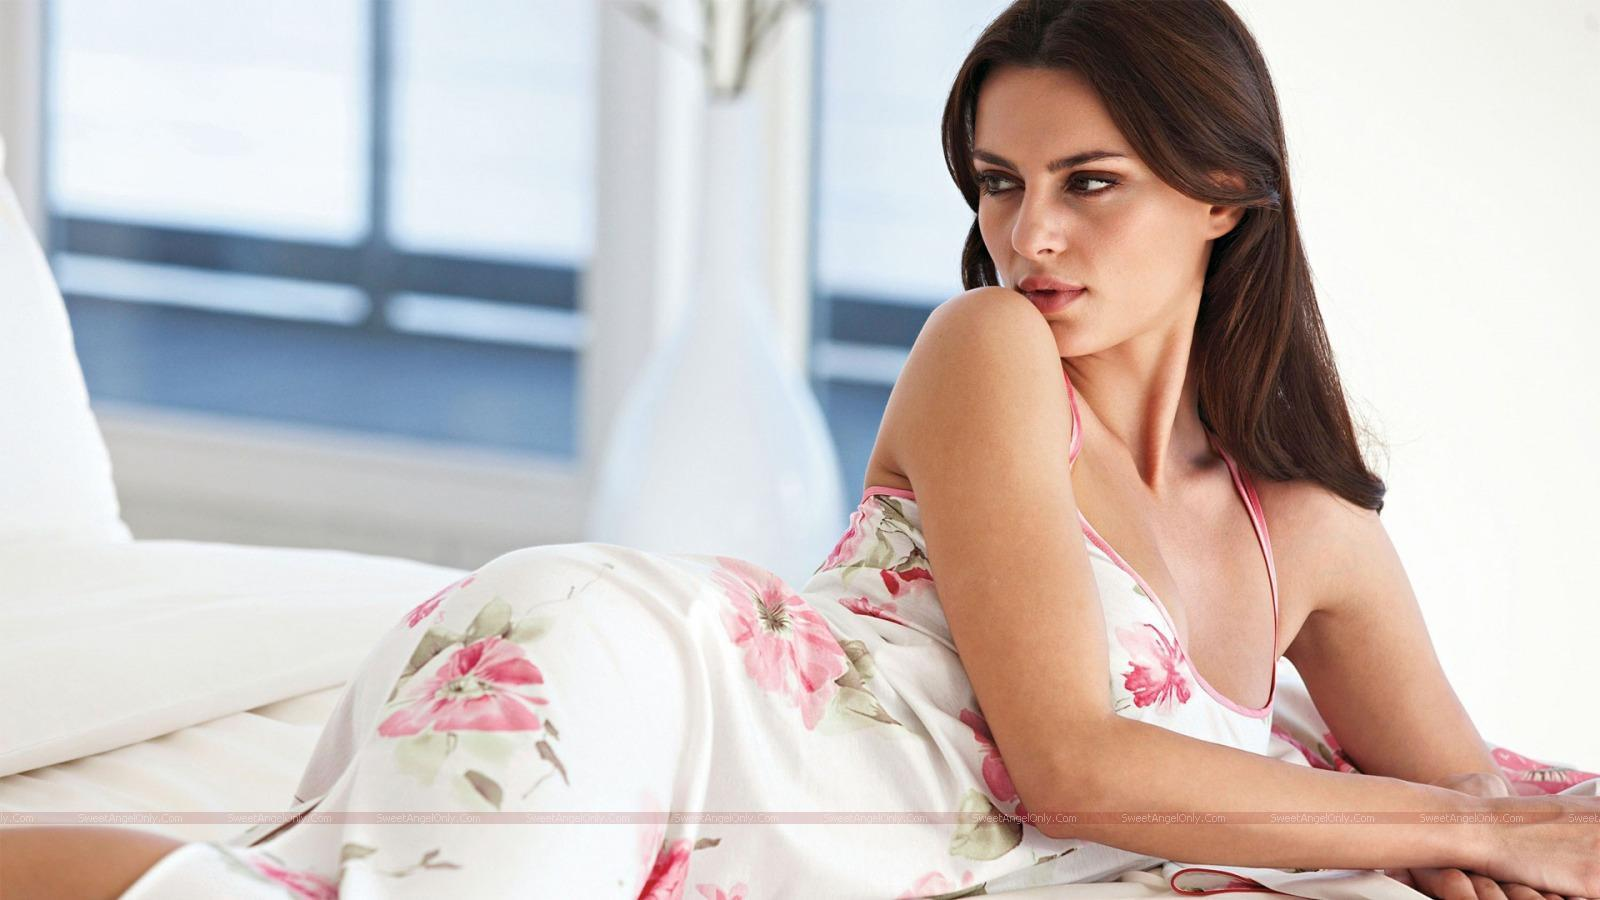 hollywood sexy actress wallpapers